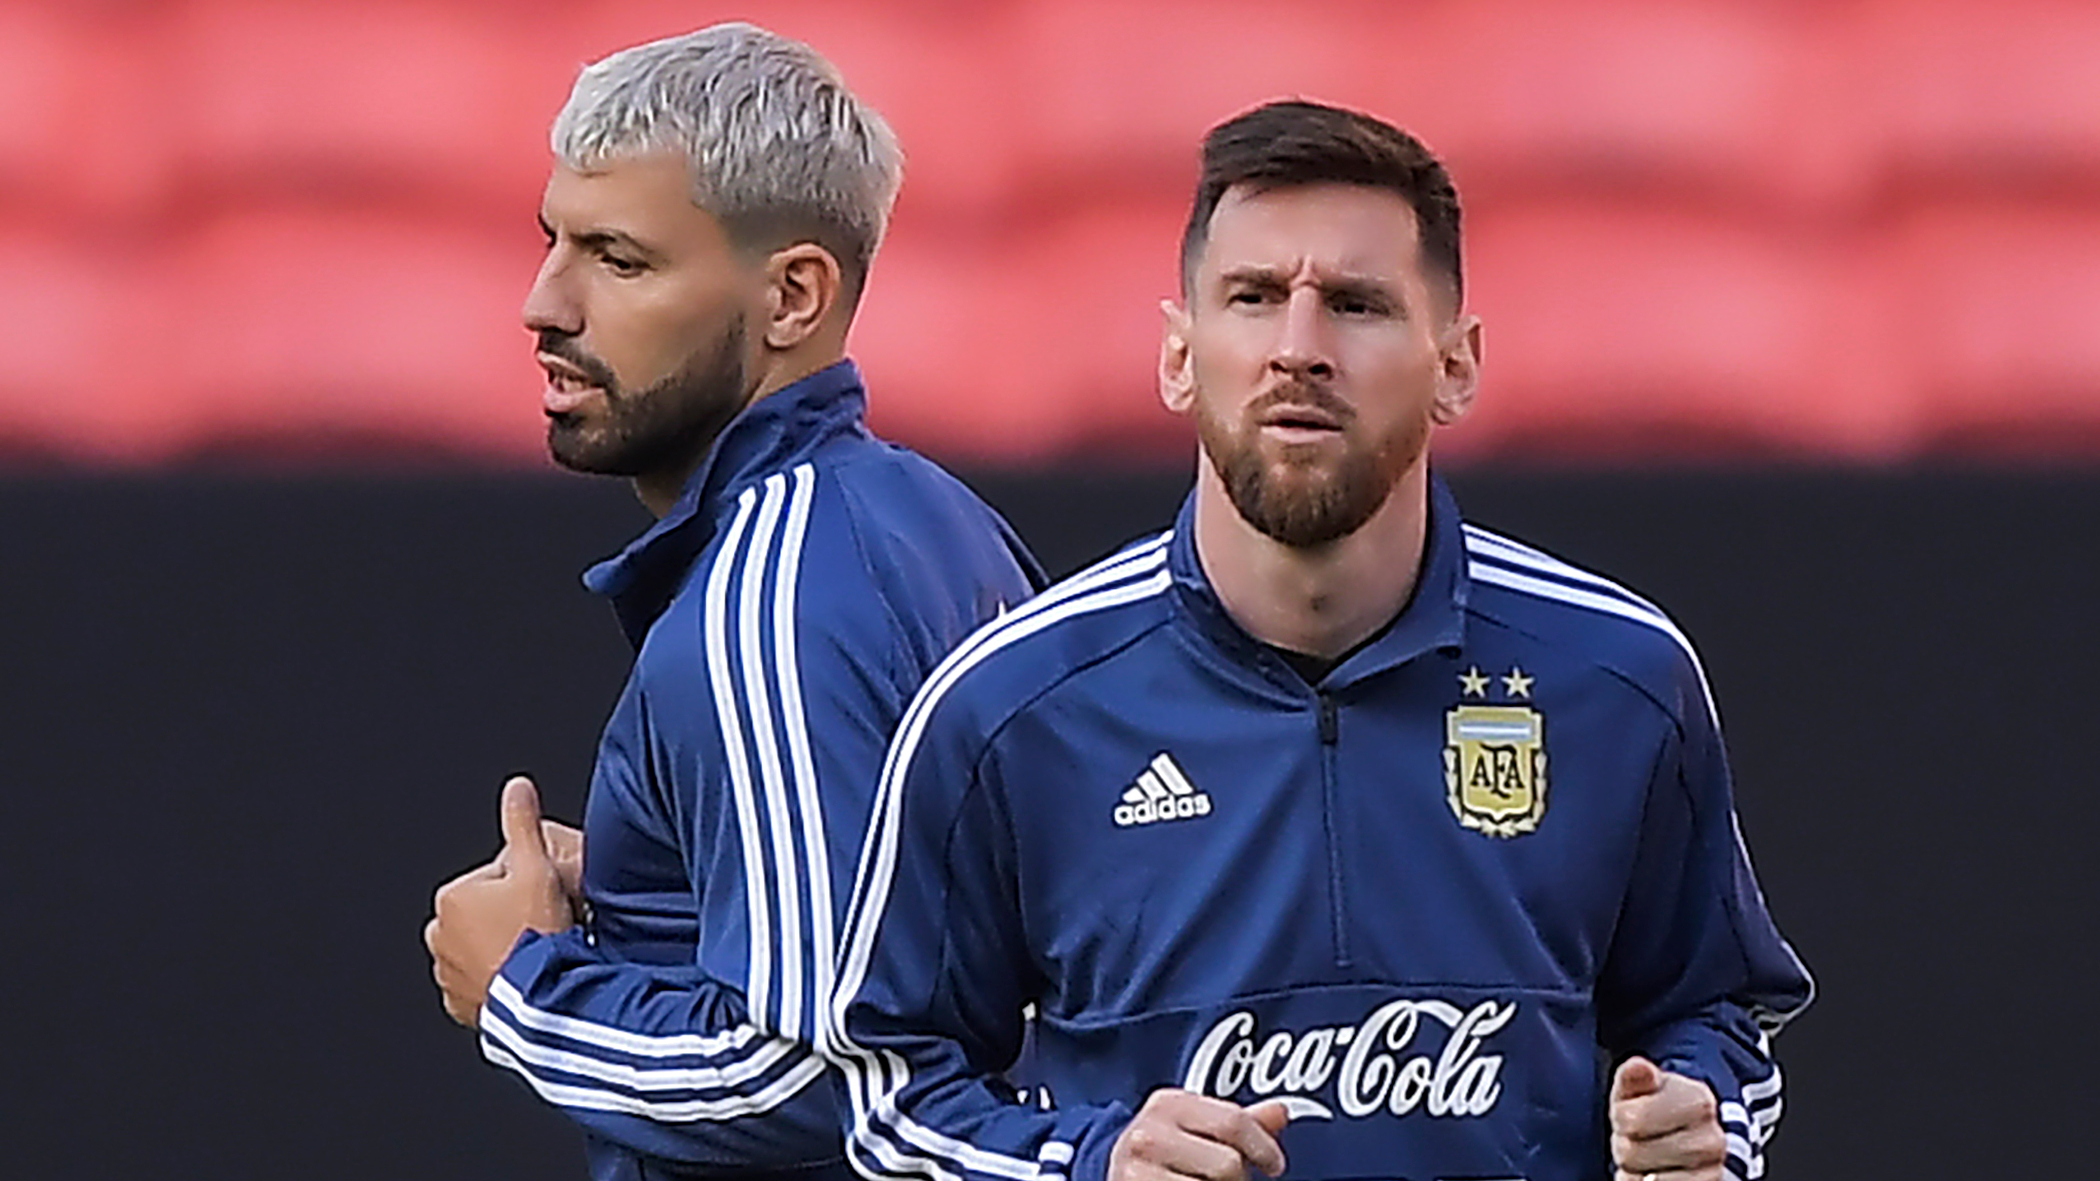 Transfer news and rumours LIVE: Messi urges Barcelona to sign Man City star Aguero